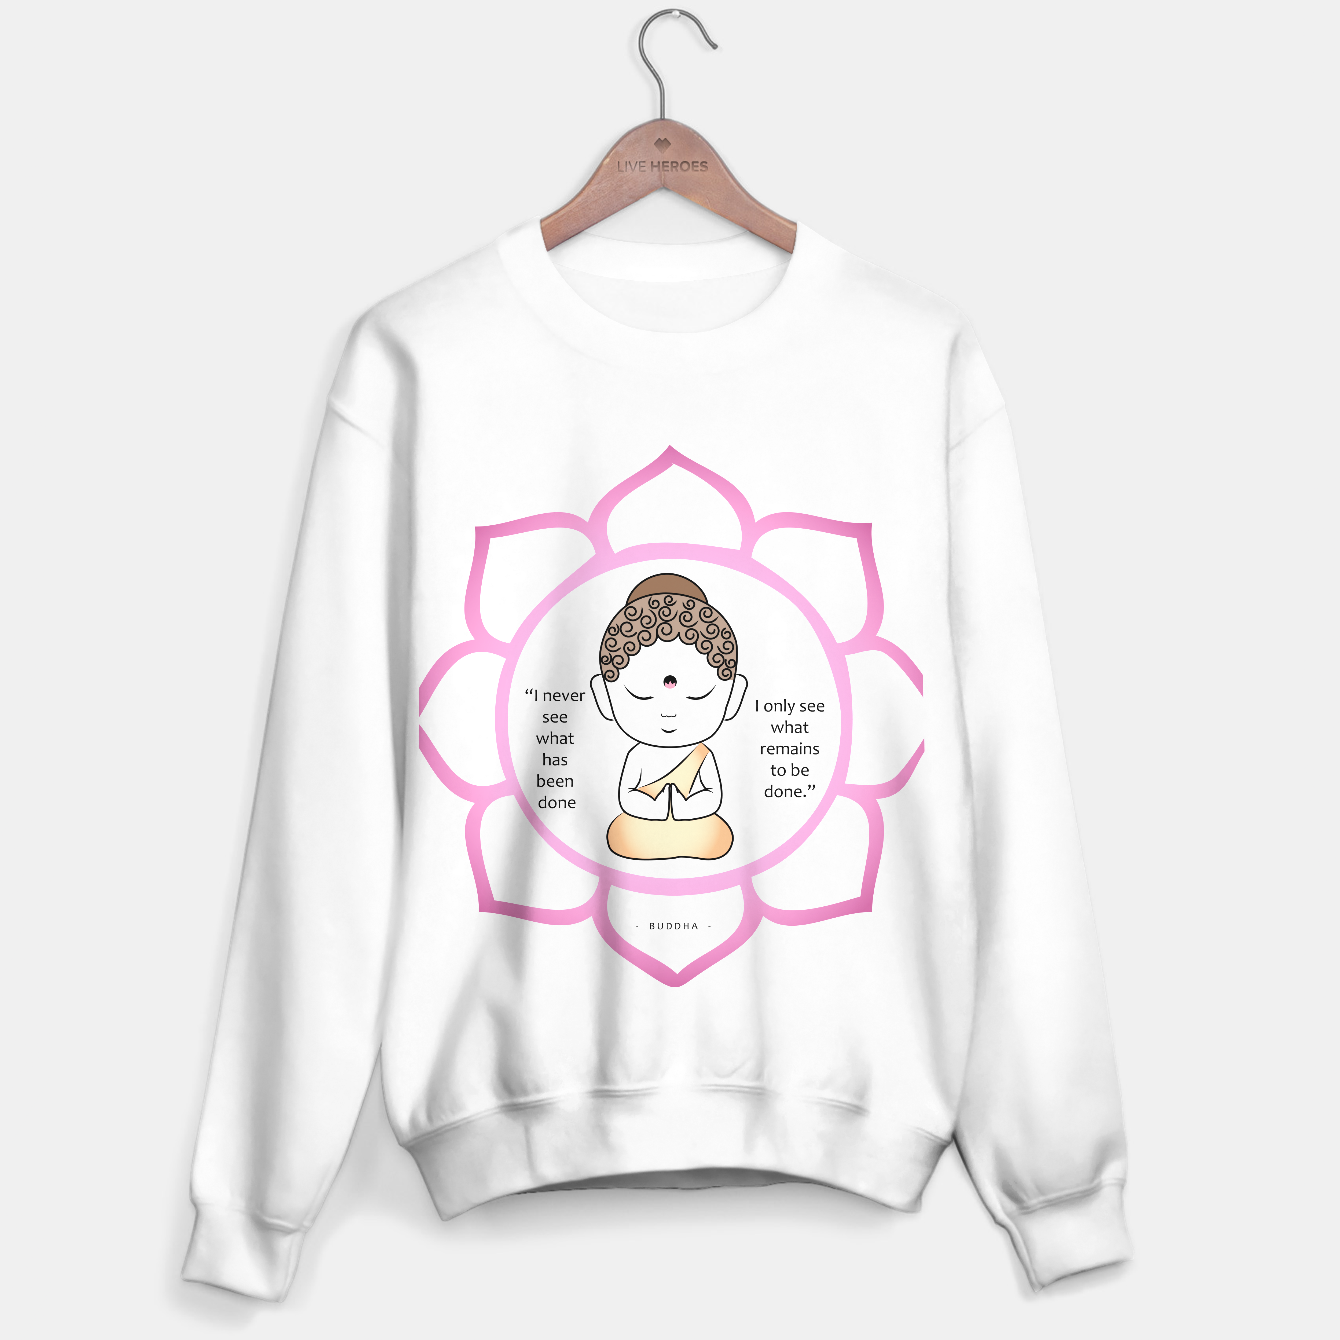 Image of Cute Buddha inside a sacred lotus with inspirational quote. The lotus is a symbol of fortune in Buddhism.